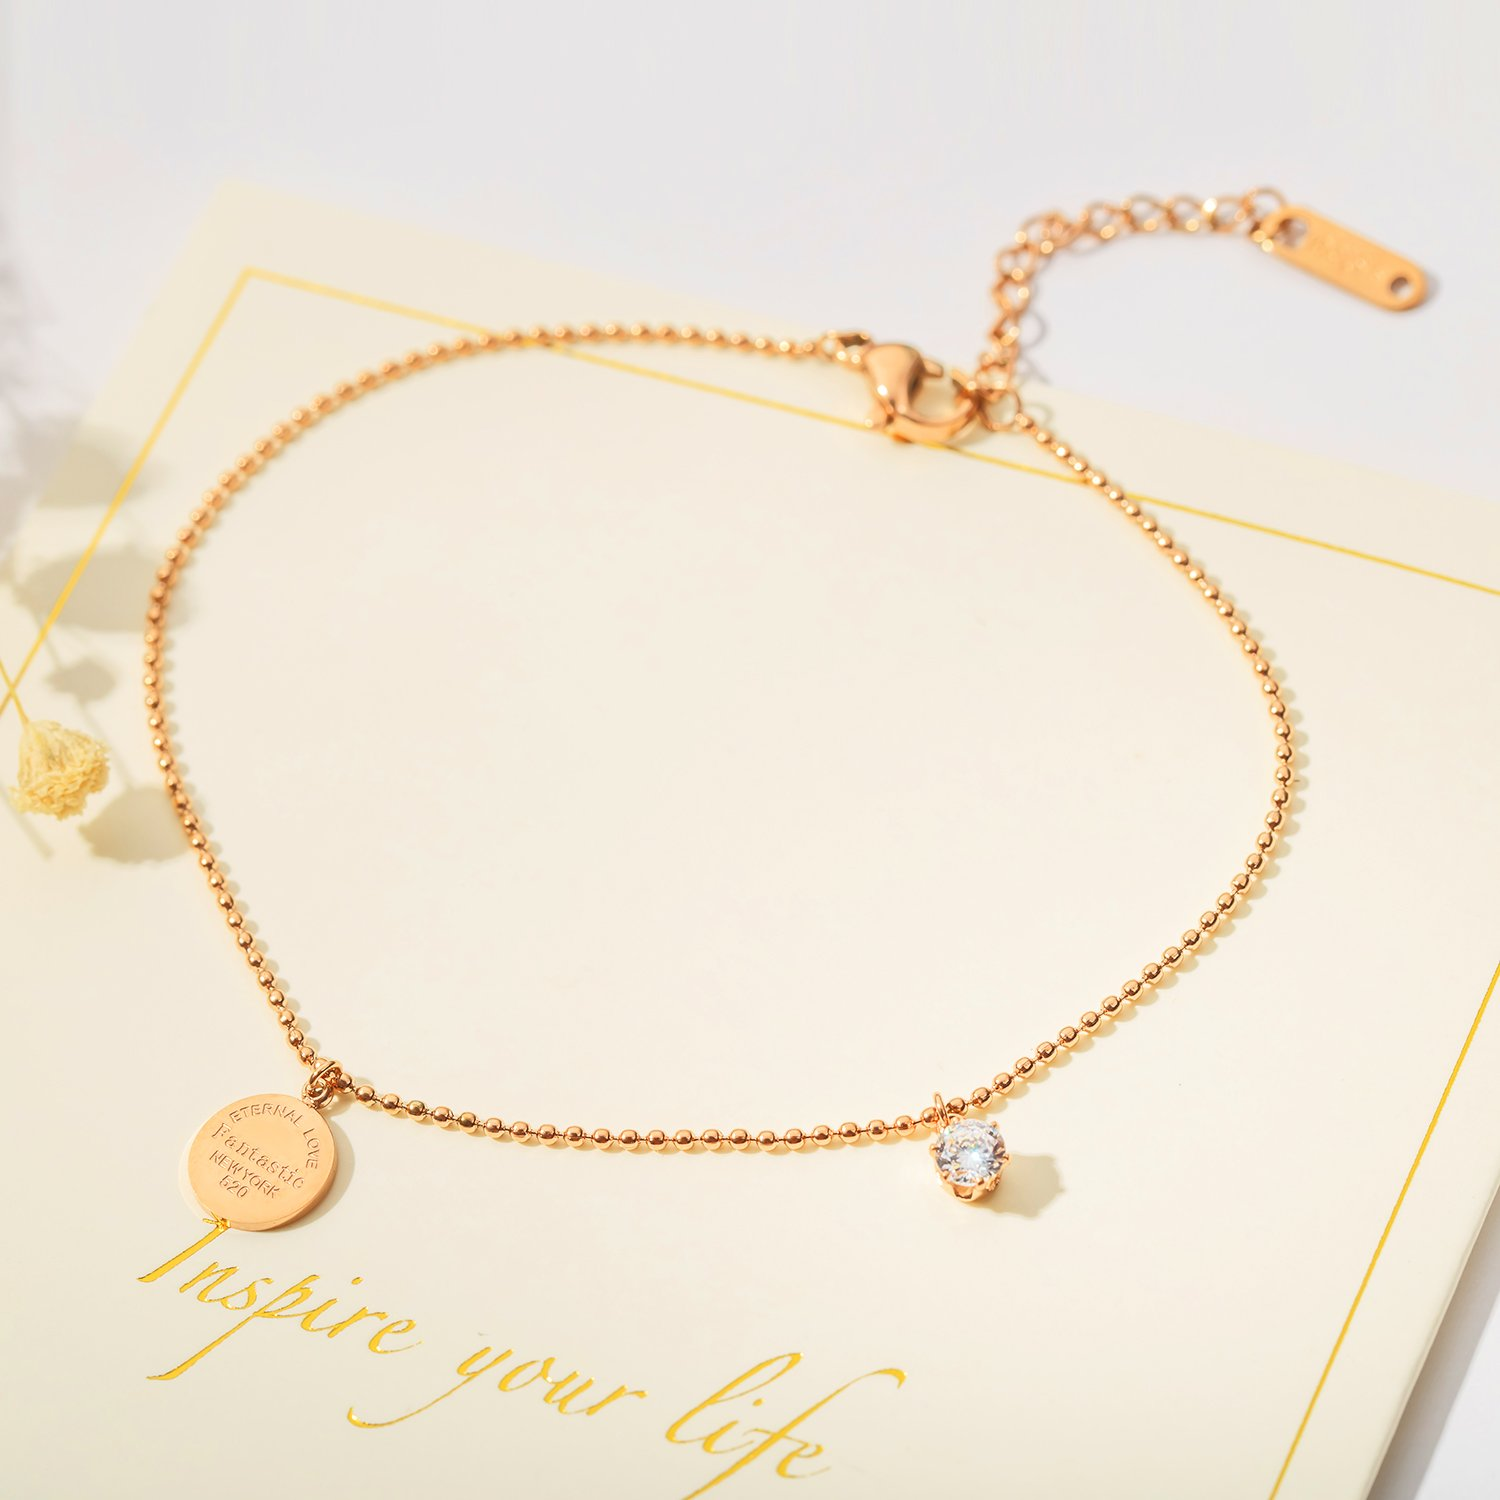 OPK Stainless Steel Rose Gold Women Anklet,Enternal Love Fantastic New York Link Chain Beach Foot Jewelry by OPK (Image #3)